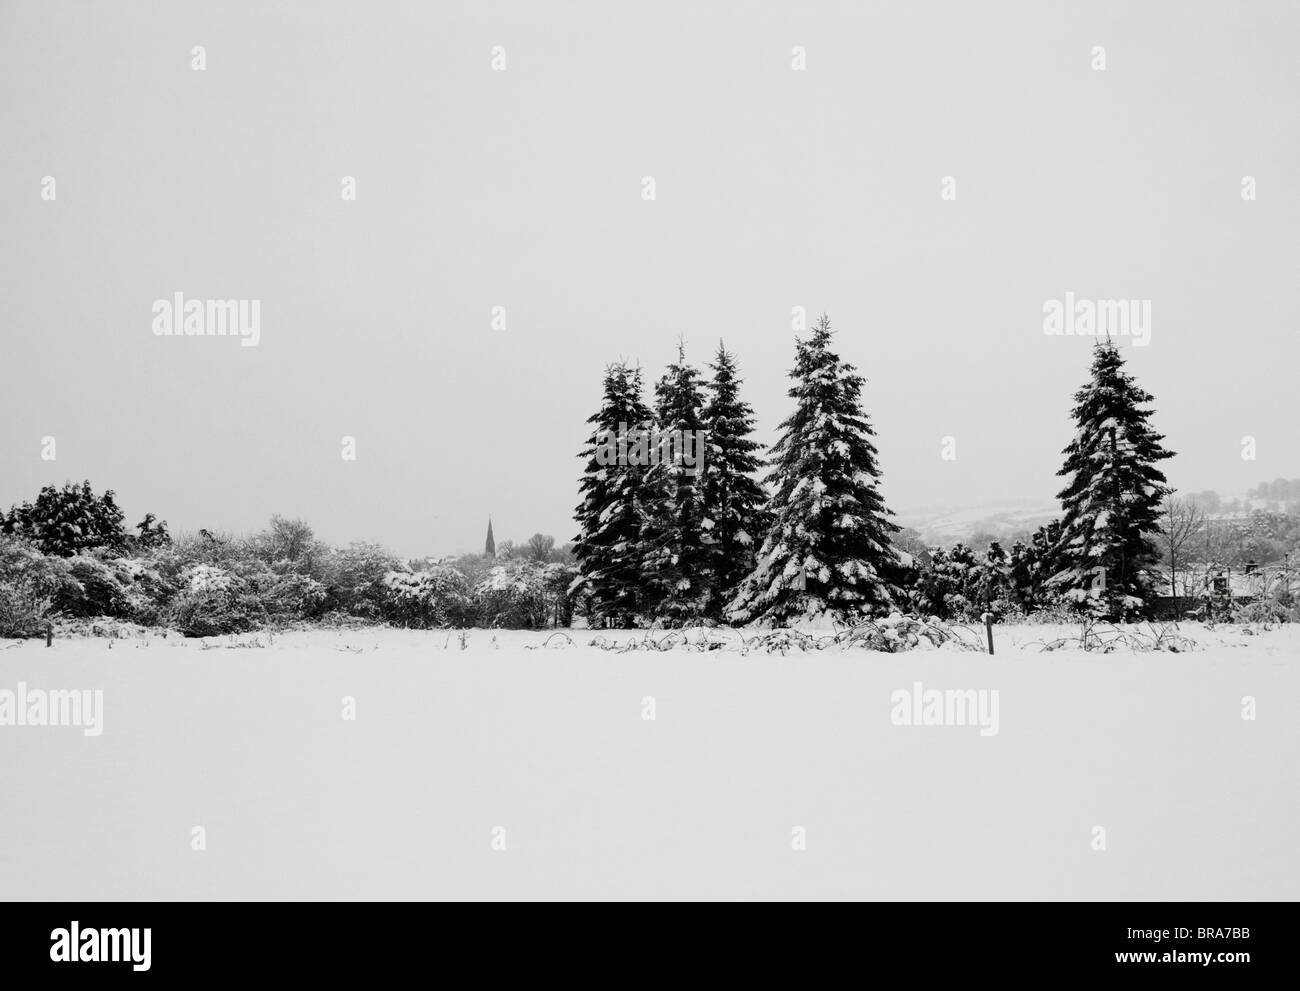 Black and white image of trees and distant buildings in the snow. - Stock Image